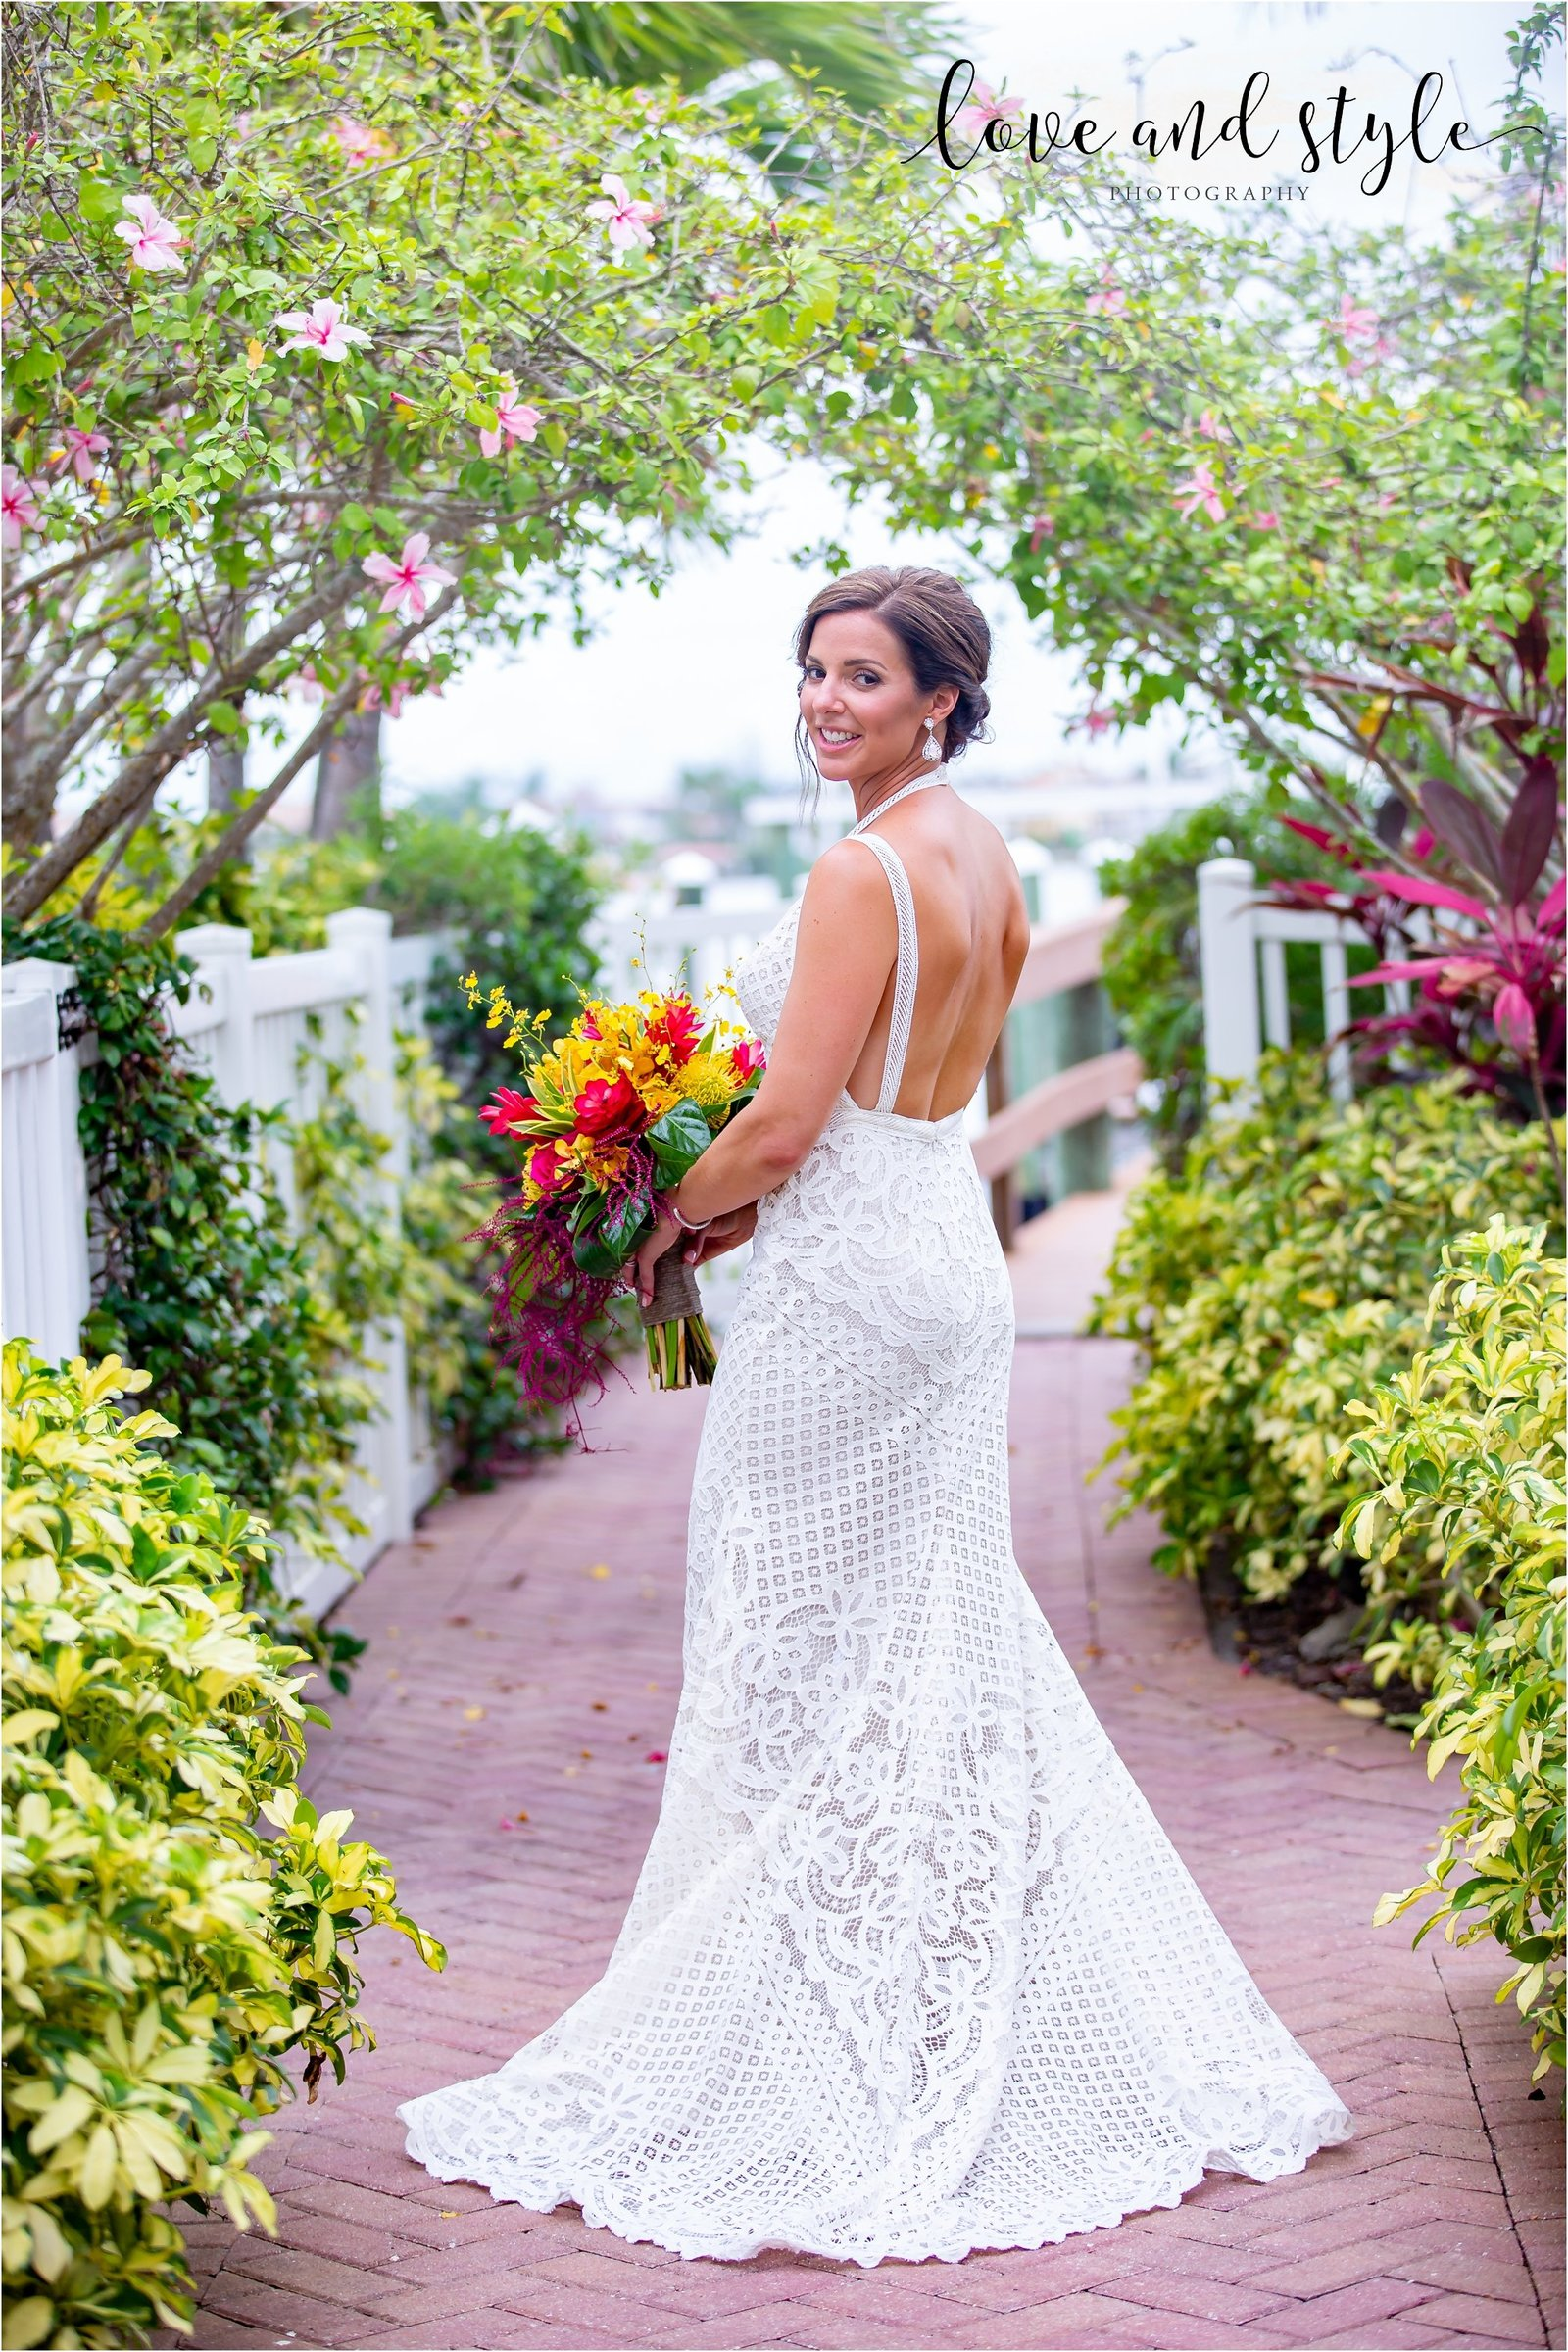 Bridal Portrait at The Tortuga Inn, Anna Maria Island Florida